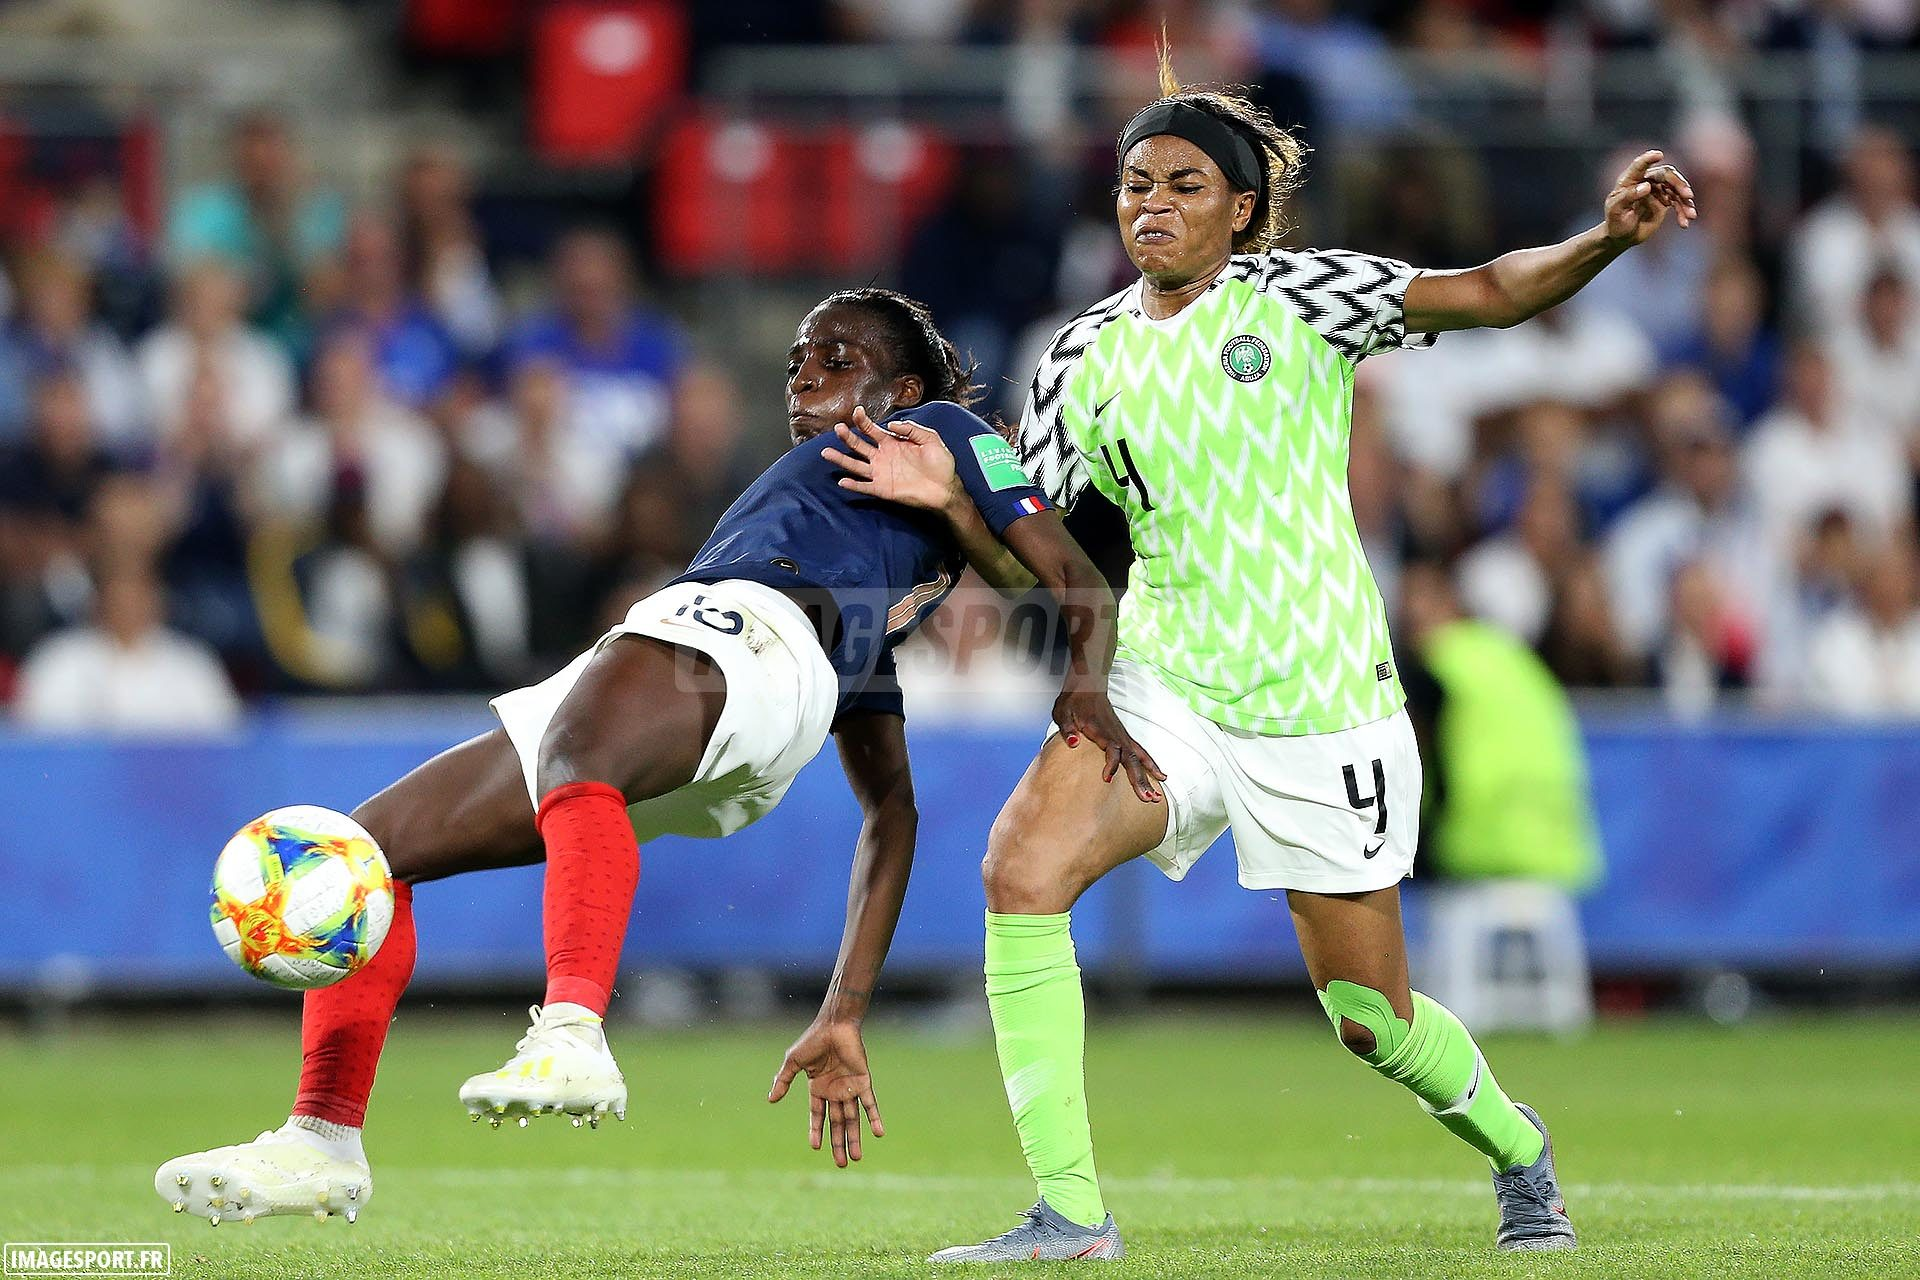 coupe-du-monde-19-nigeria-france_22